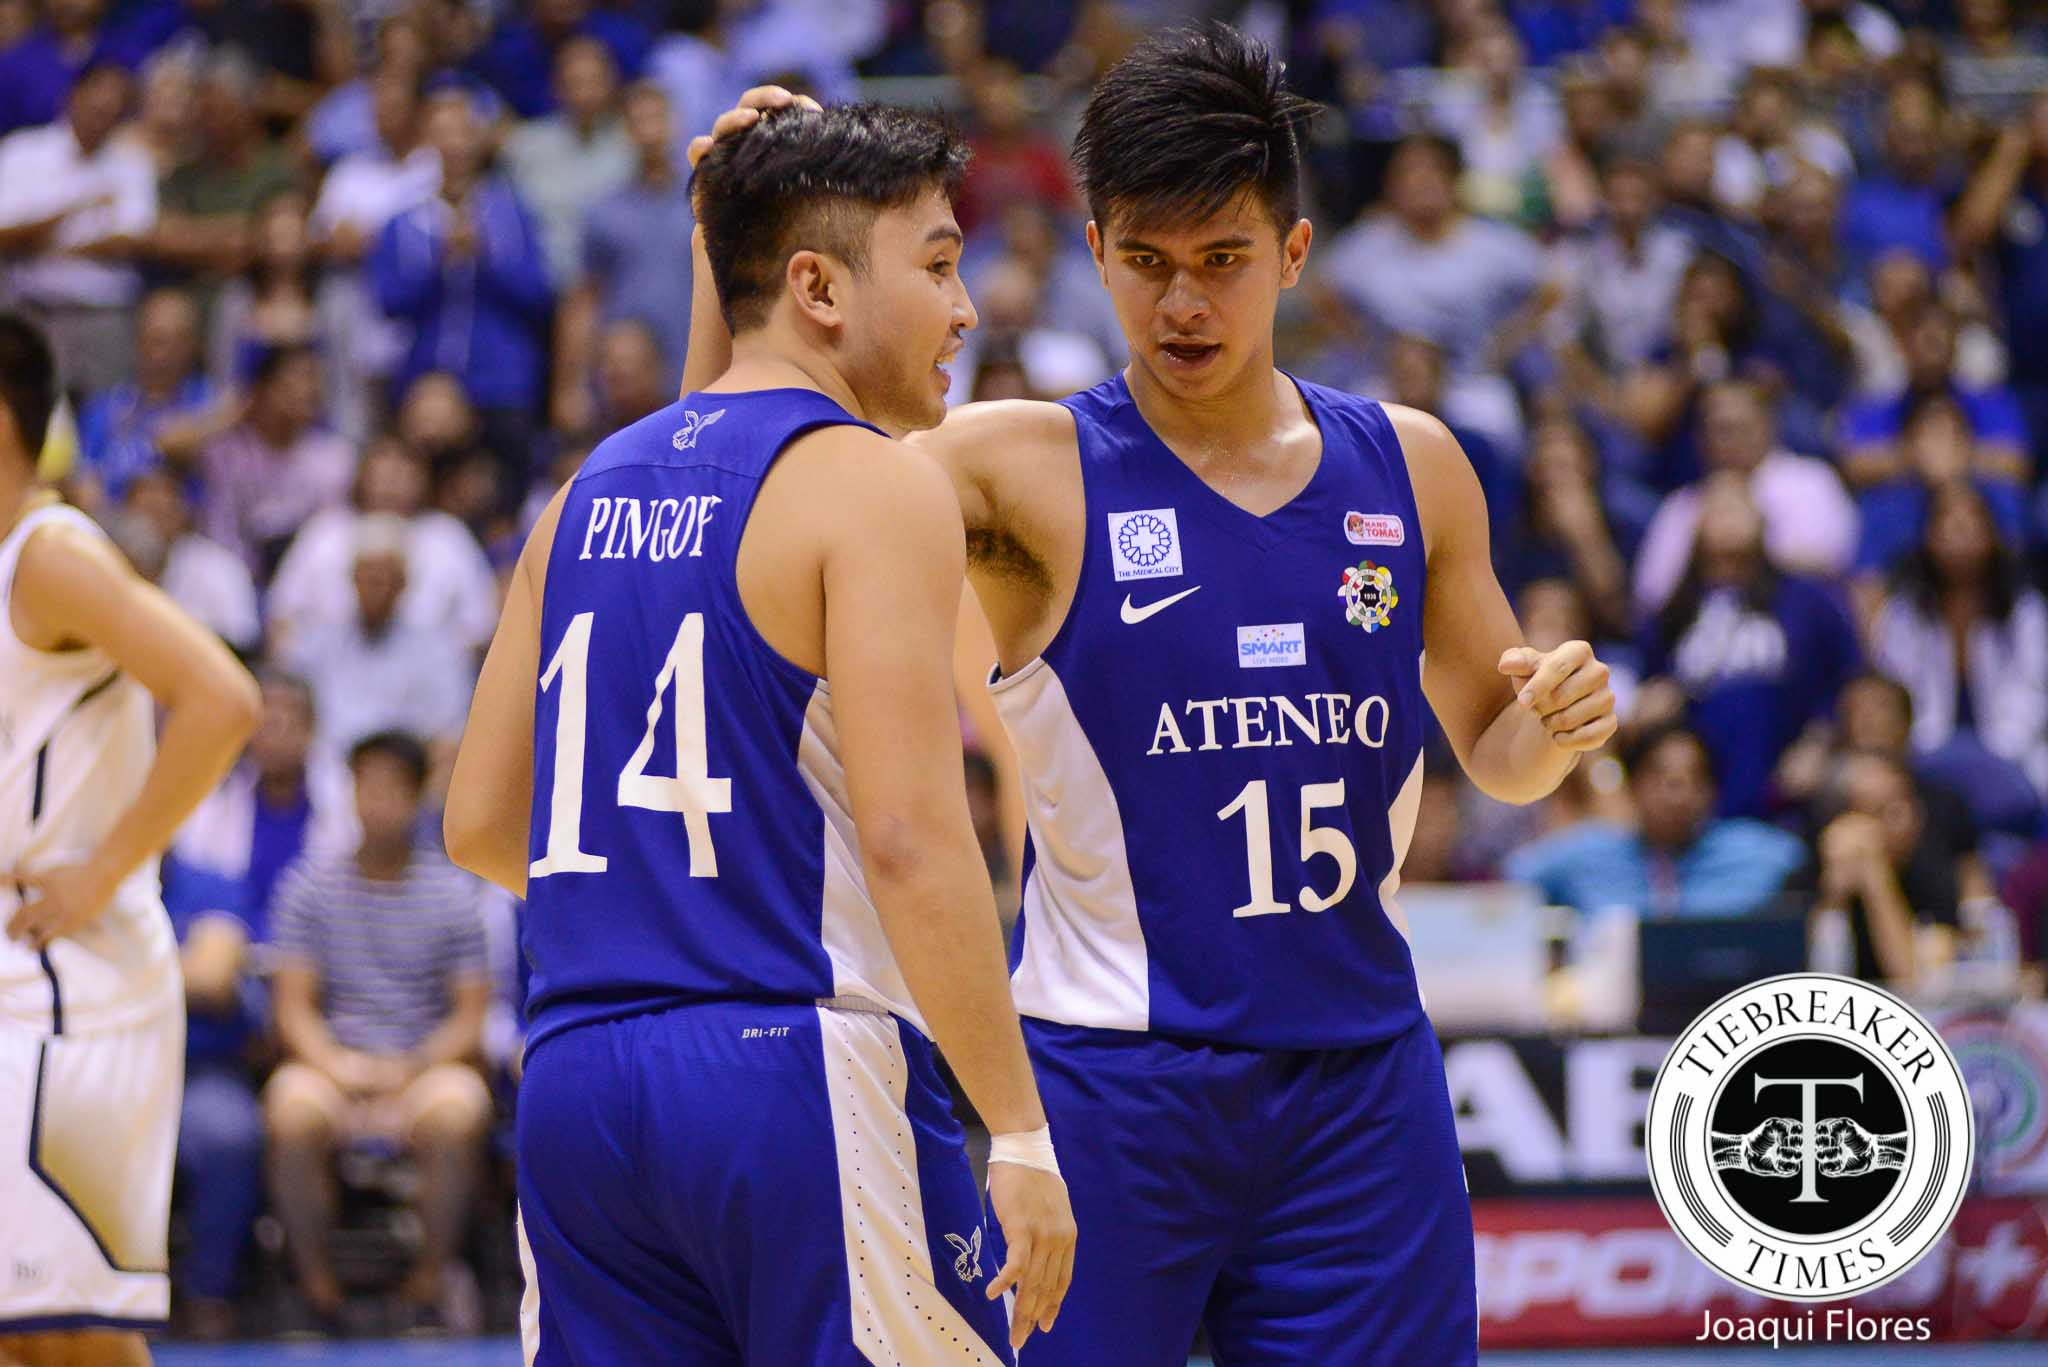 UAAP-78-ADMU-vs.-NU-Ravena-Pingoy-3898 Ravena bros look back on day Thirdy 'lost a year' ADMU Basketball News UAAP  - philippine sports news